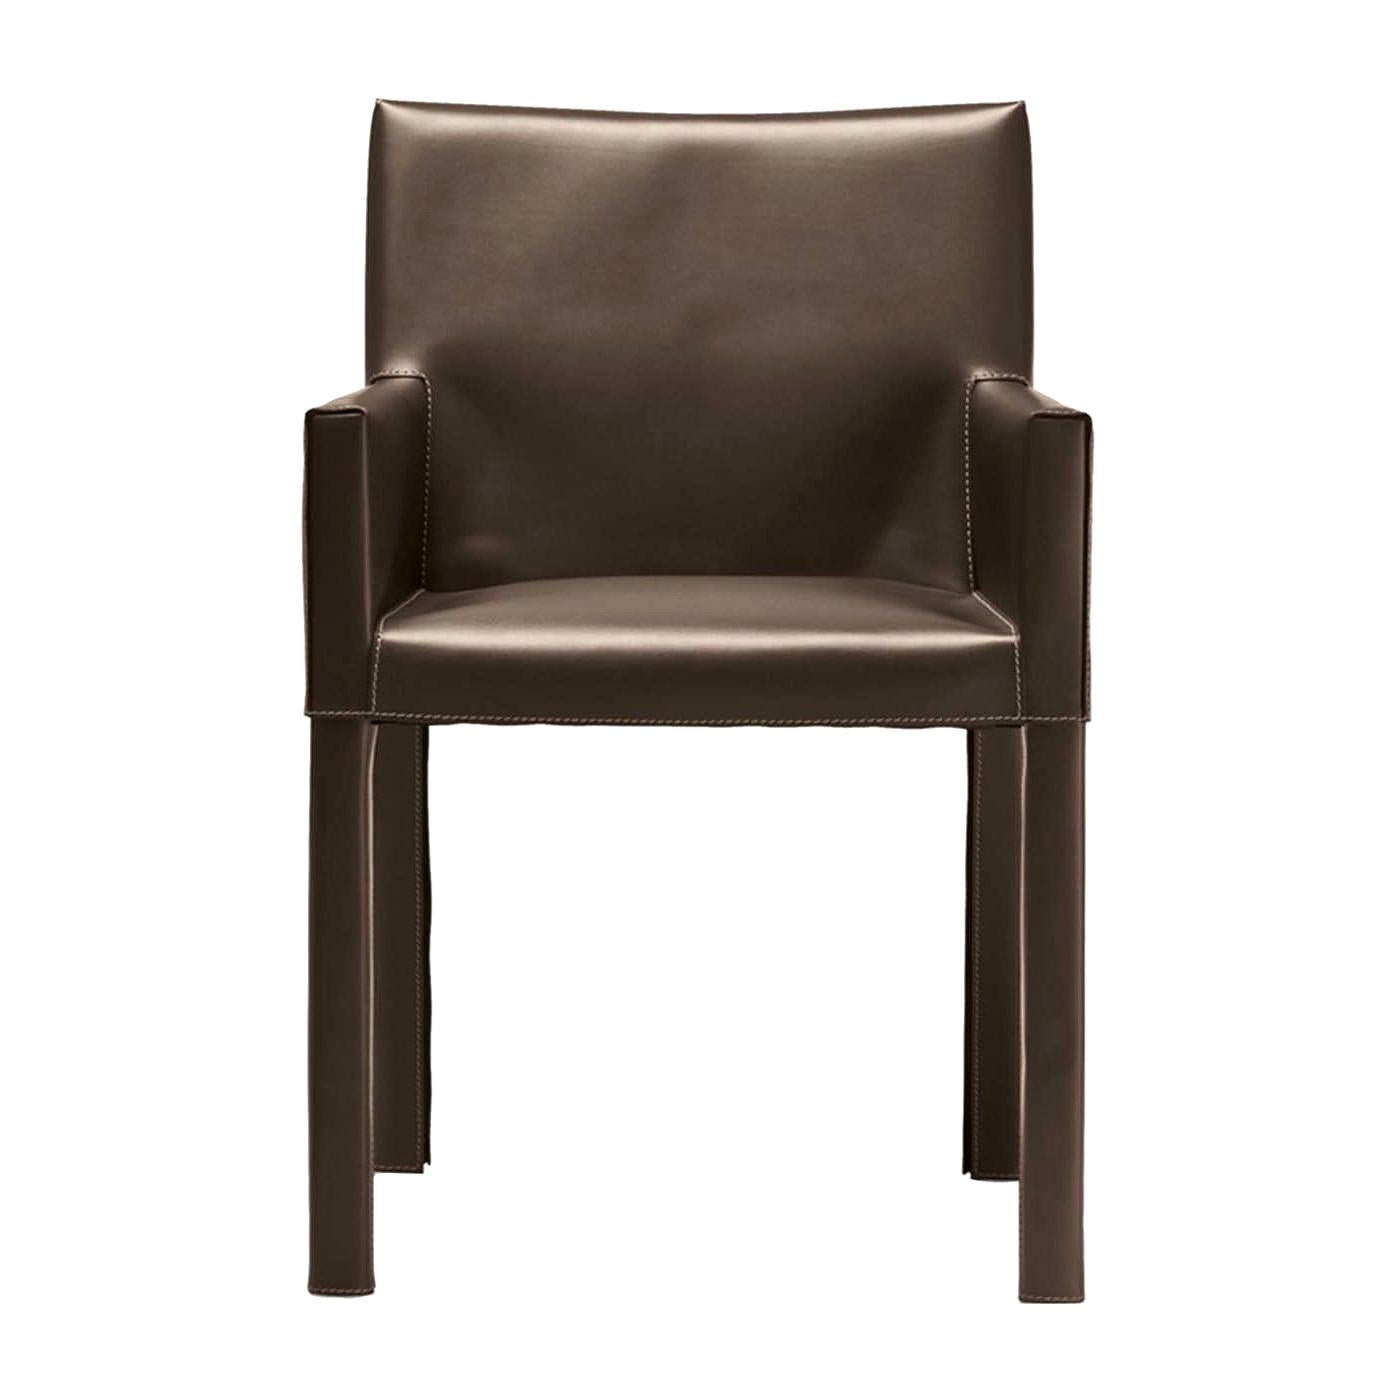 Trama Chair with Armrests